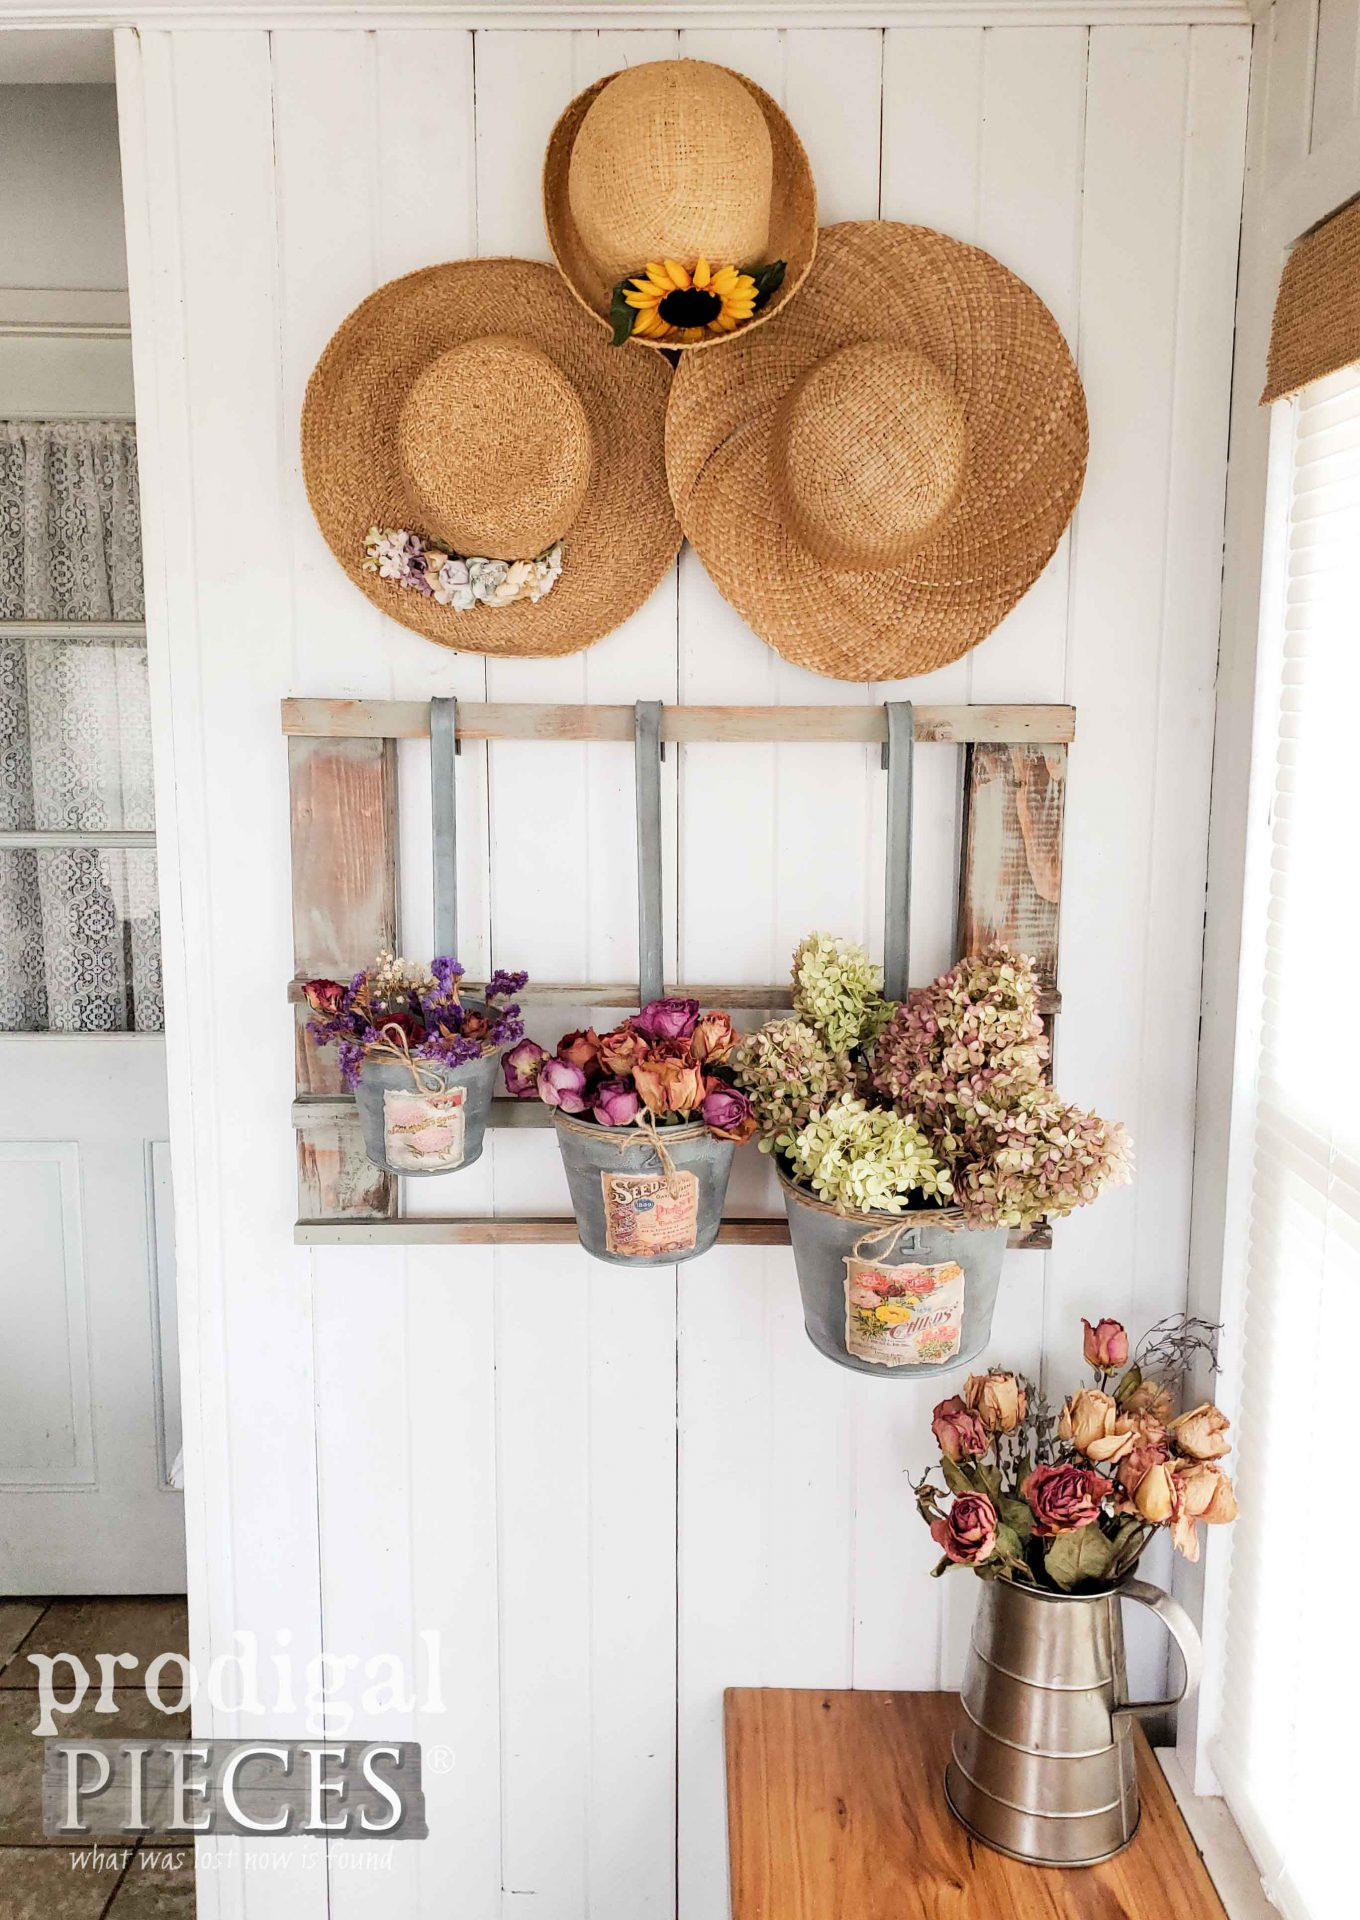 Dried Floral Farmhouse Decor from Upcycled Christmas Decor | Video Tutorial by Larissa of Prodigal Pieces | prodigalpieces.com #prodigalpieces #farmhouse #diy #upcycled #floral